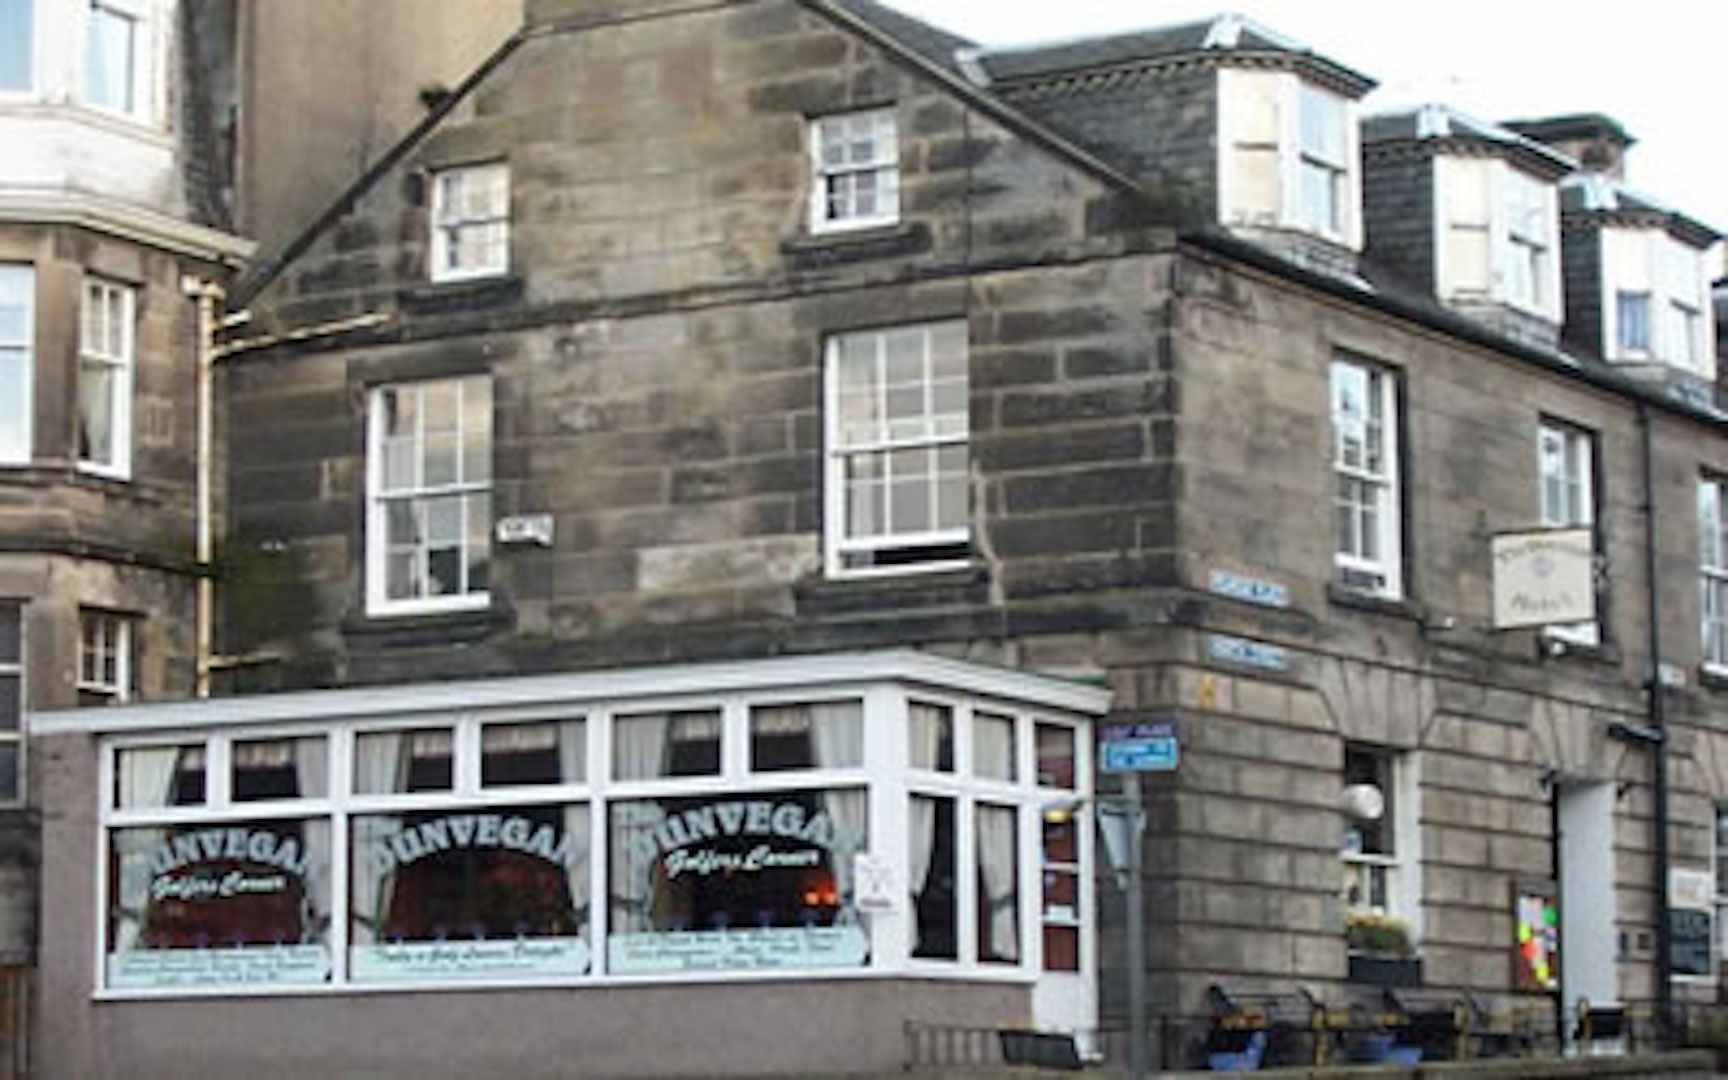 Dunvegan Hotel for sale